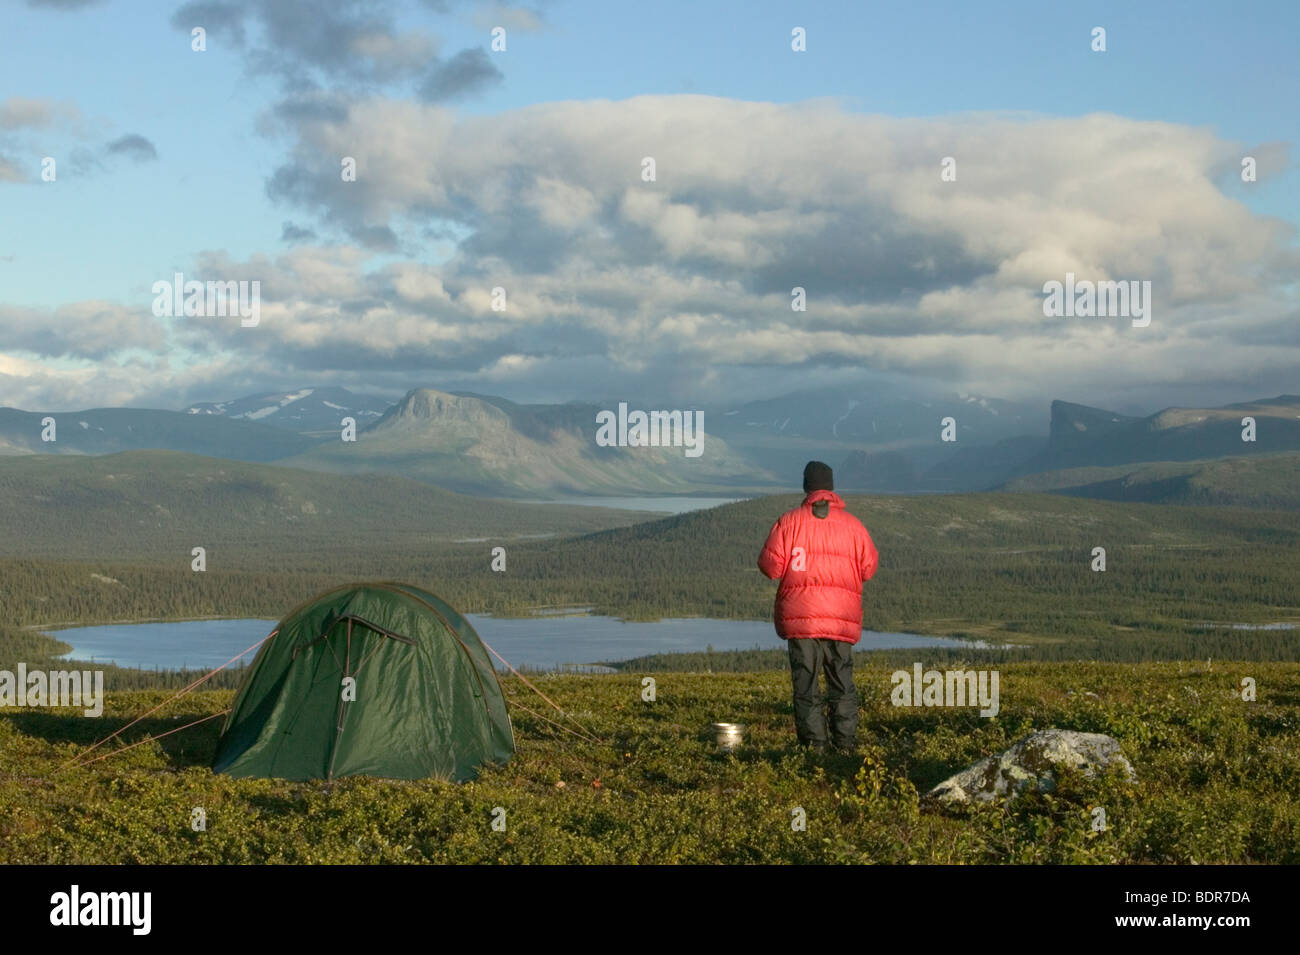 Camping with a view over mountain landscape Lapland Sweden. - Stock Image